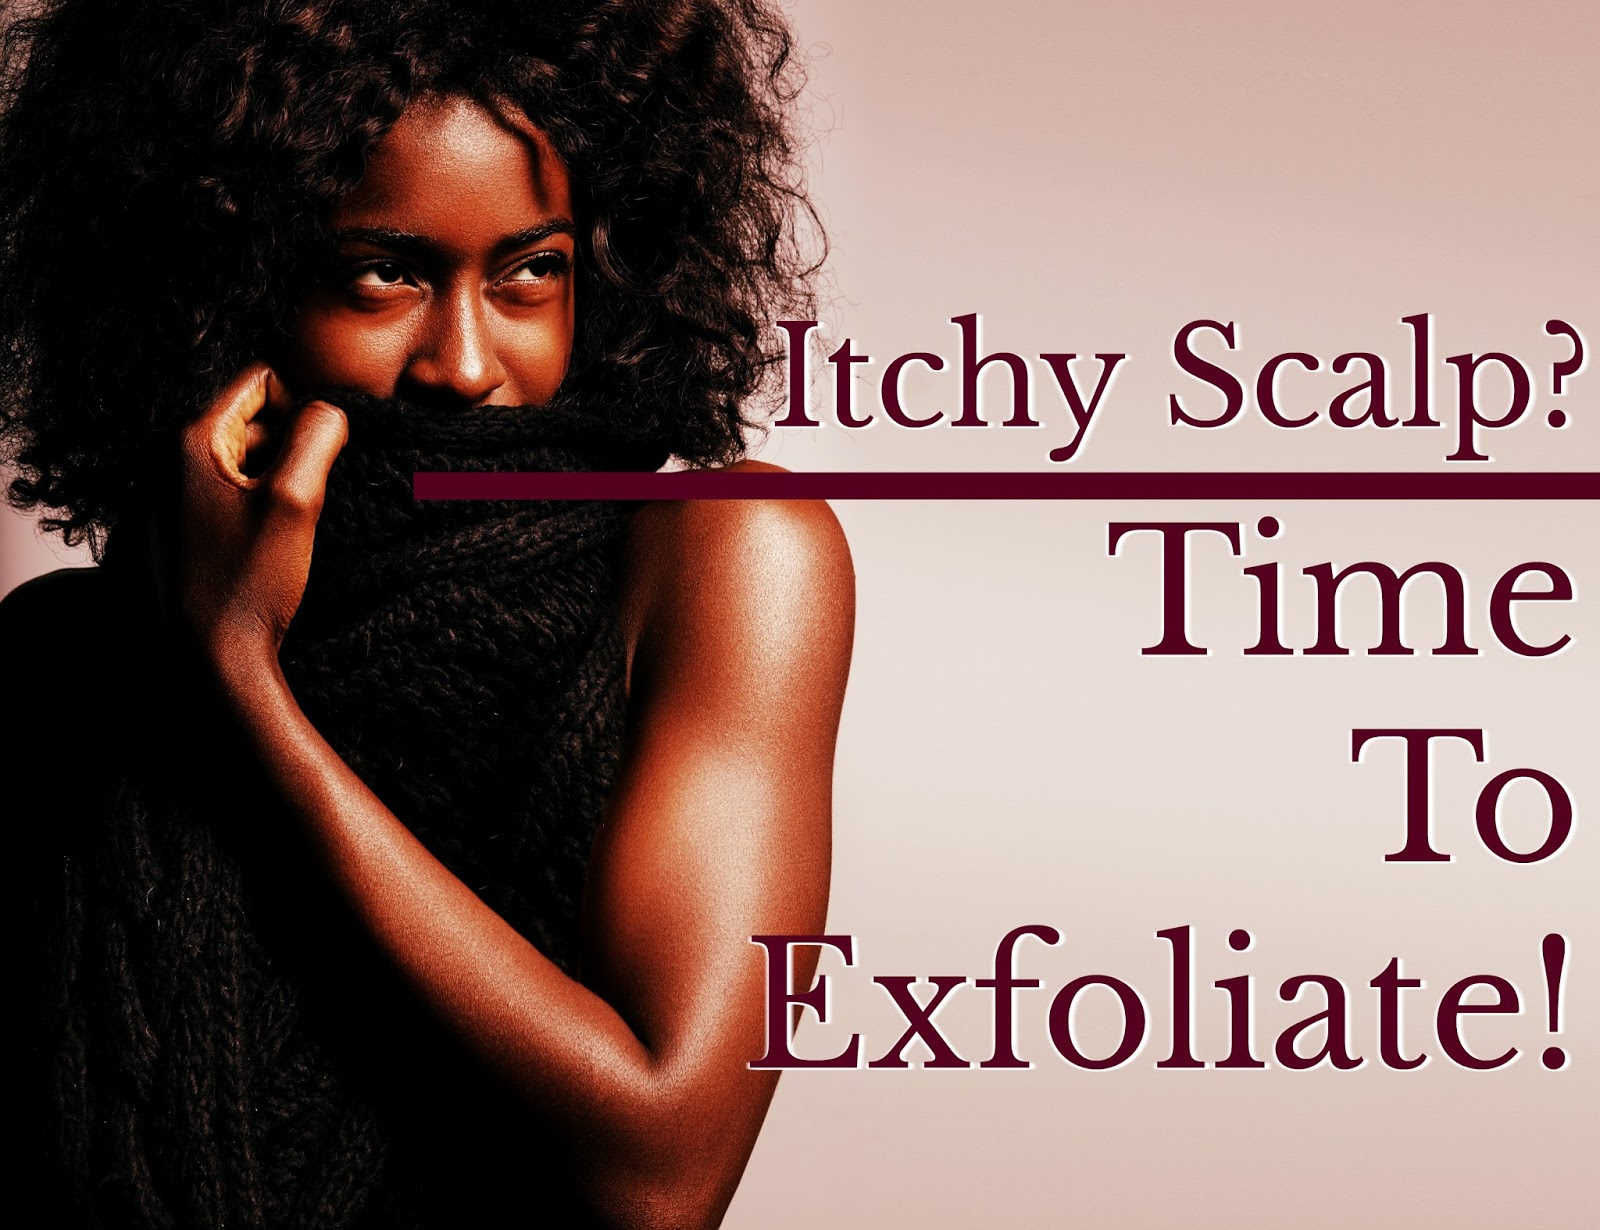 Suffering from a itchy scalp? It's probably time to do a scalp exfoliation! A scalp exfoliation will help remove dead skin cells and unclog pores.